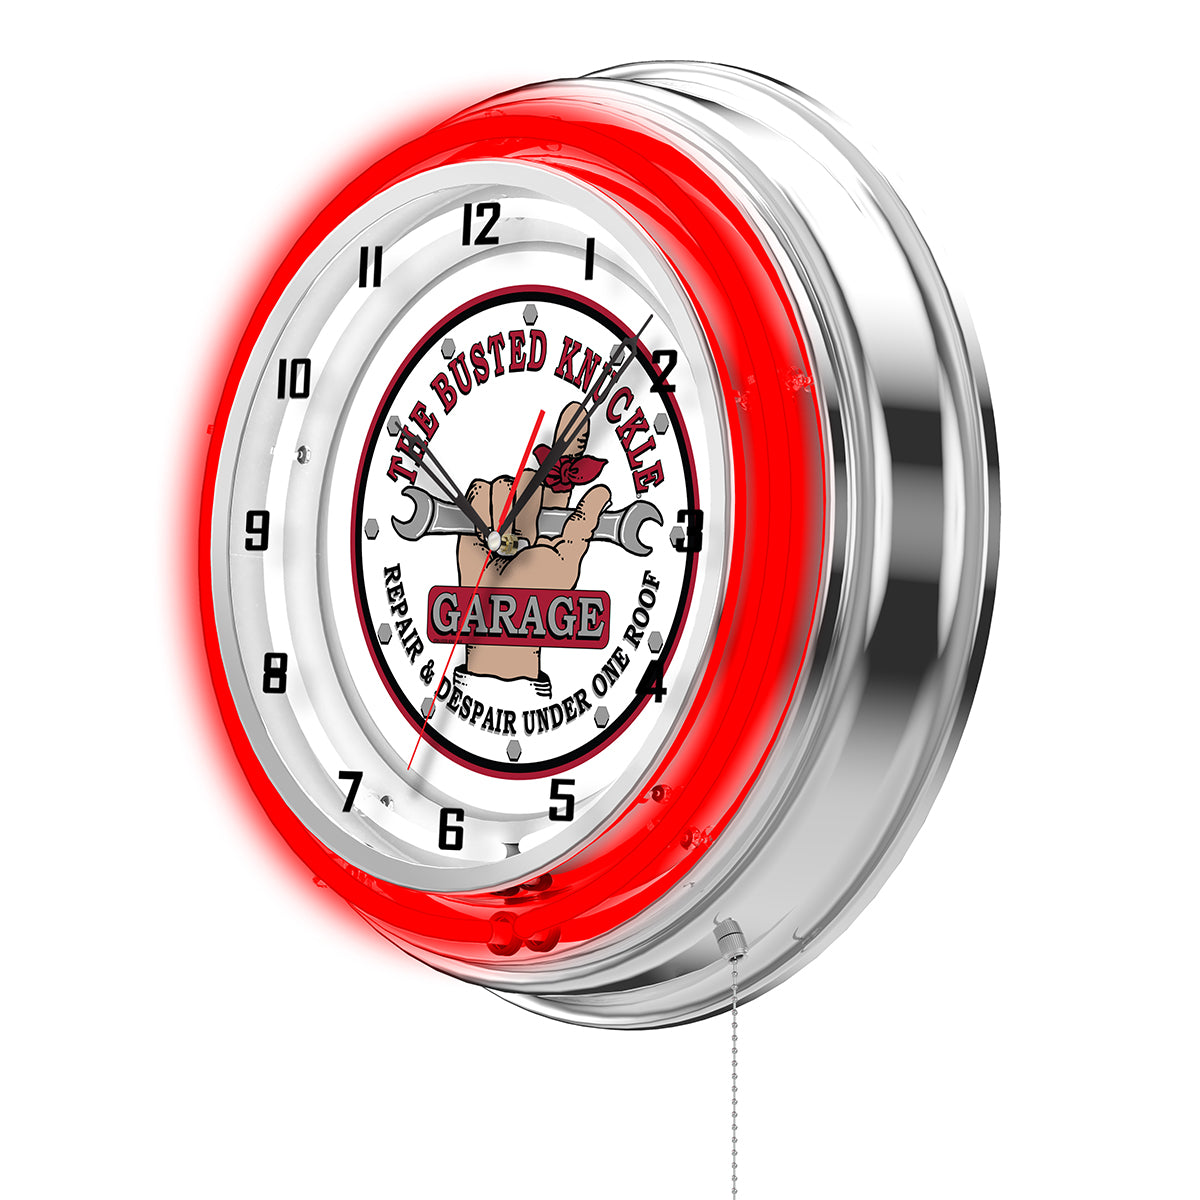 Busted Knuckle White Logo Clock - Red Neon